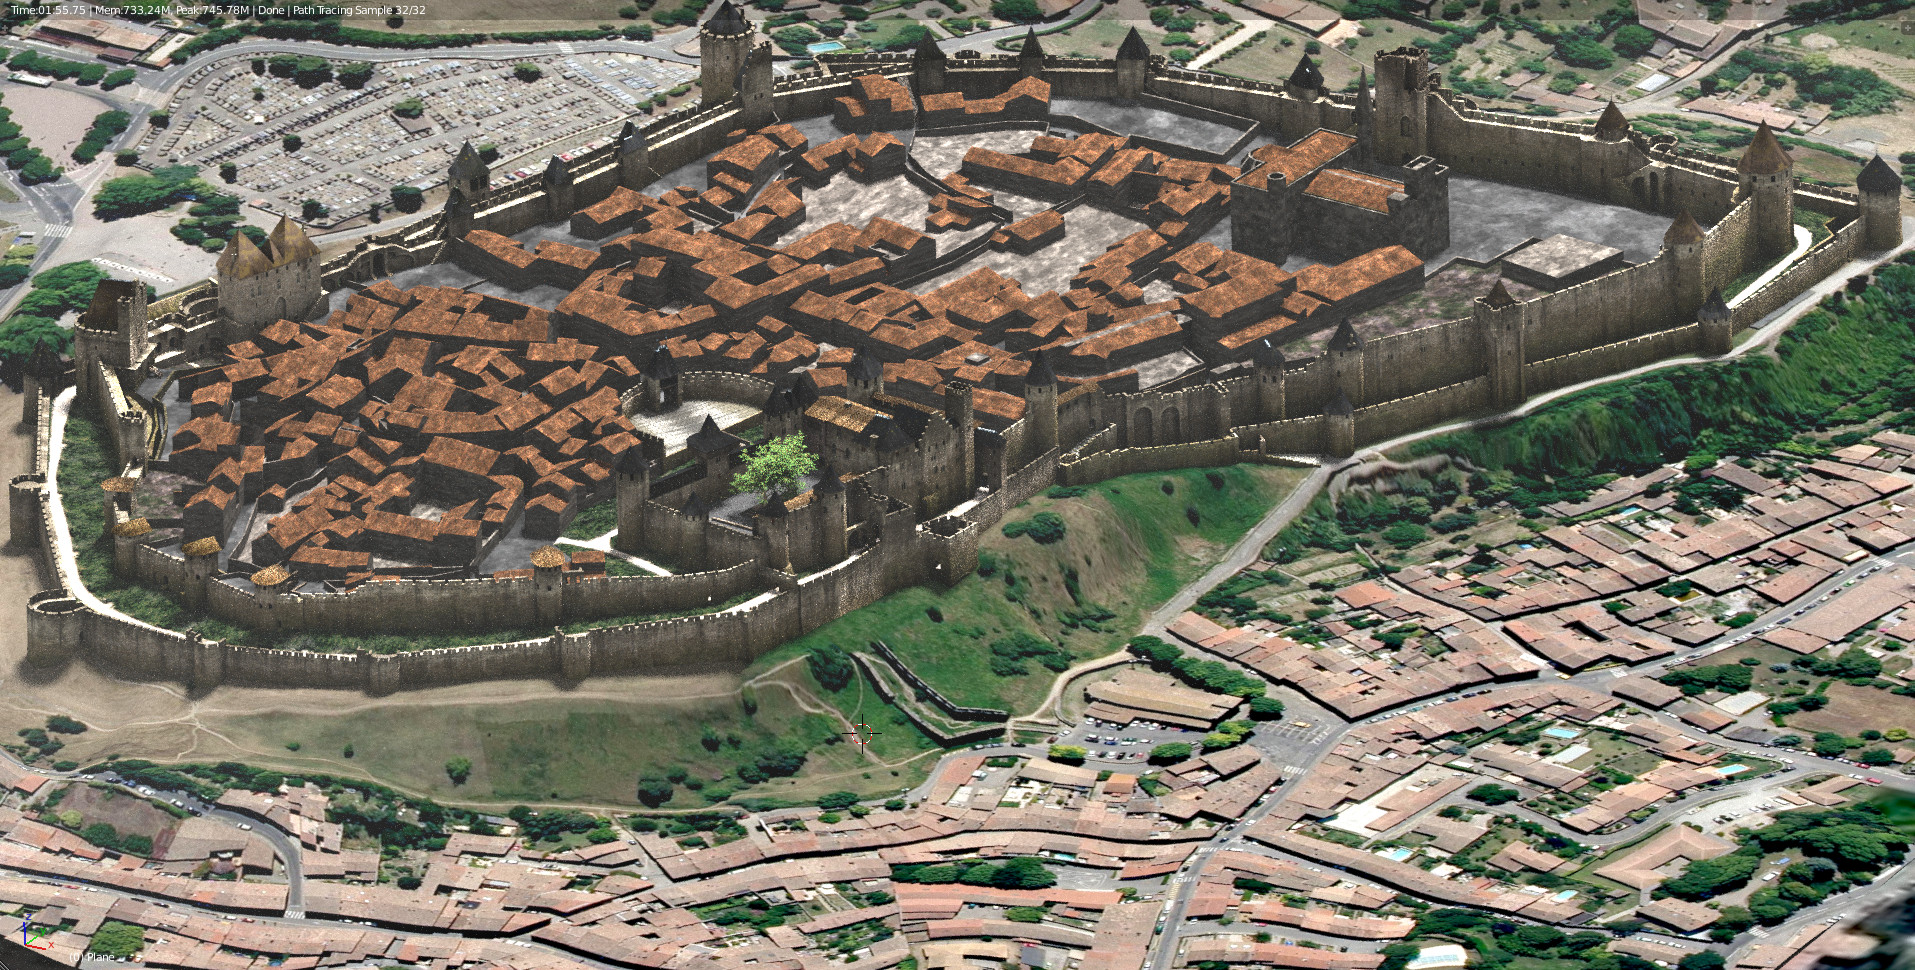 The medieval city in 3D seen from the sky.